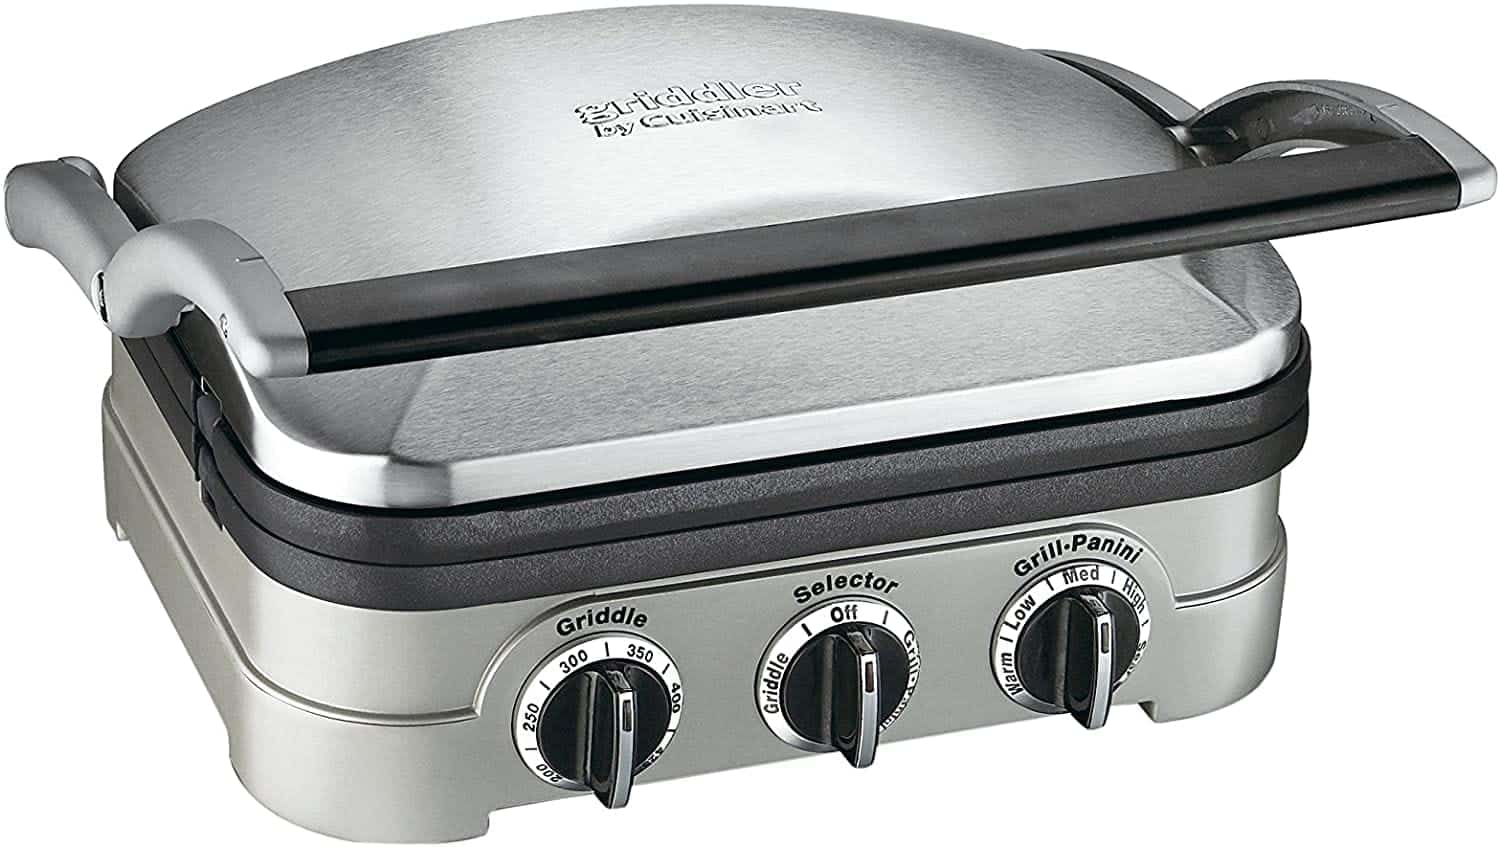 Cuisinart Electric Griddle